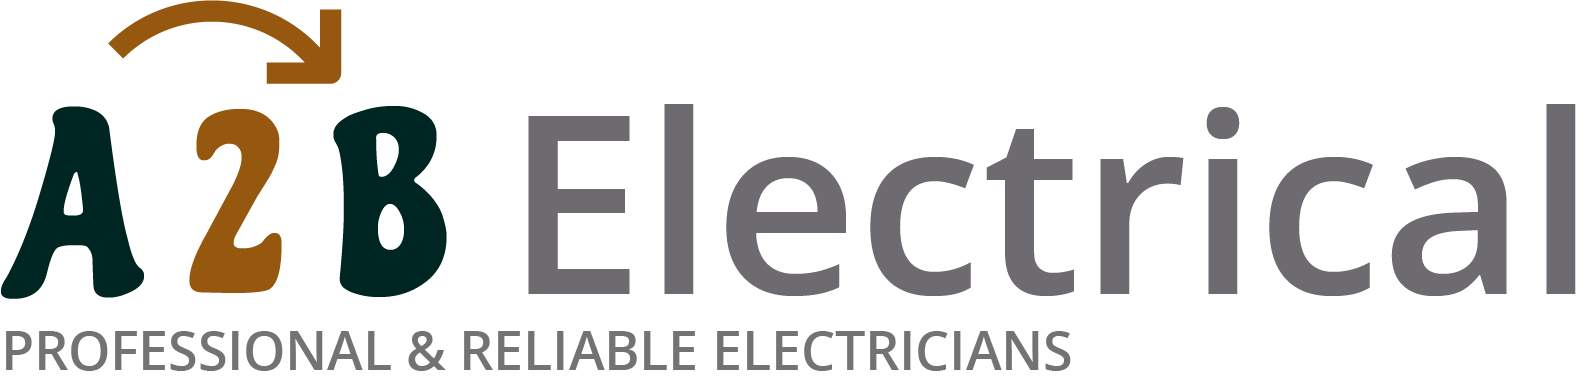 If you have electrical wiring problems in Kidbrooke, we can provide an electrician to have a look for you.